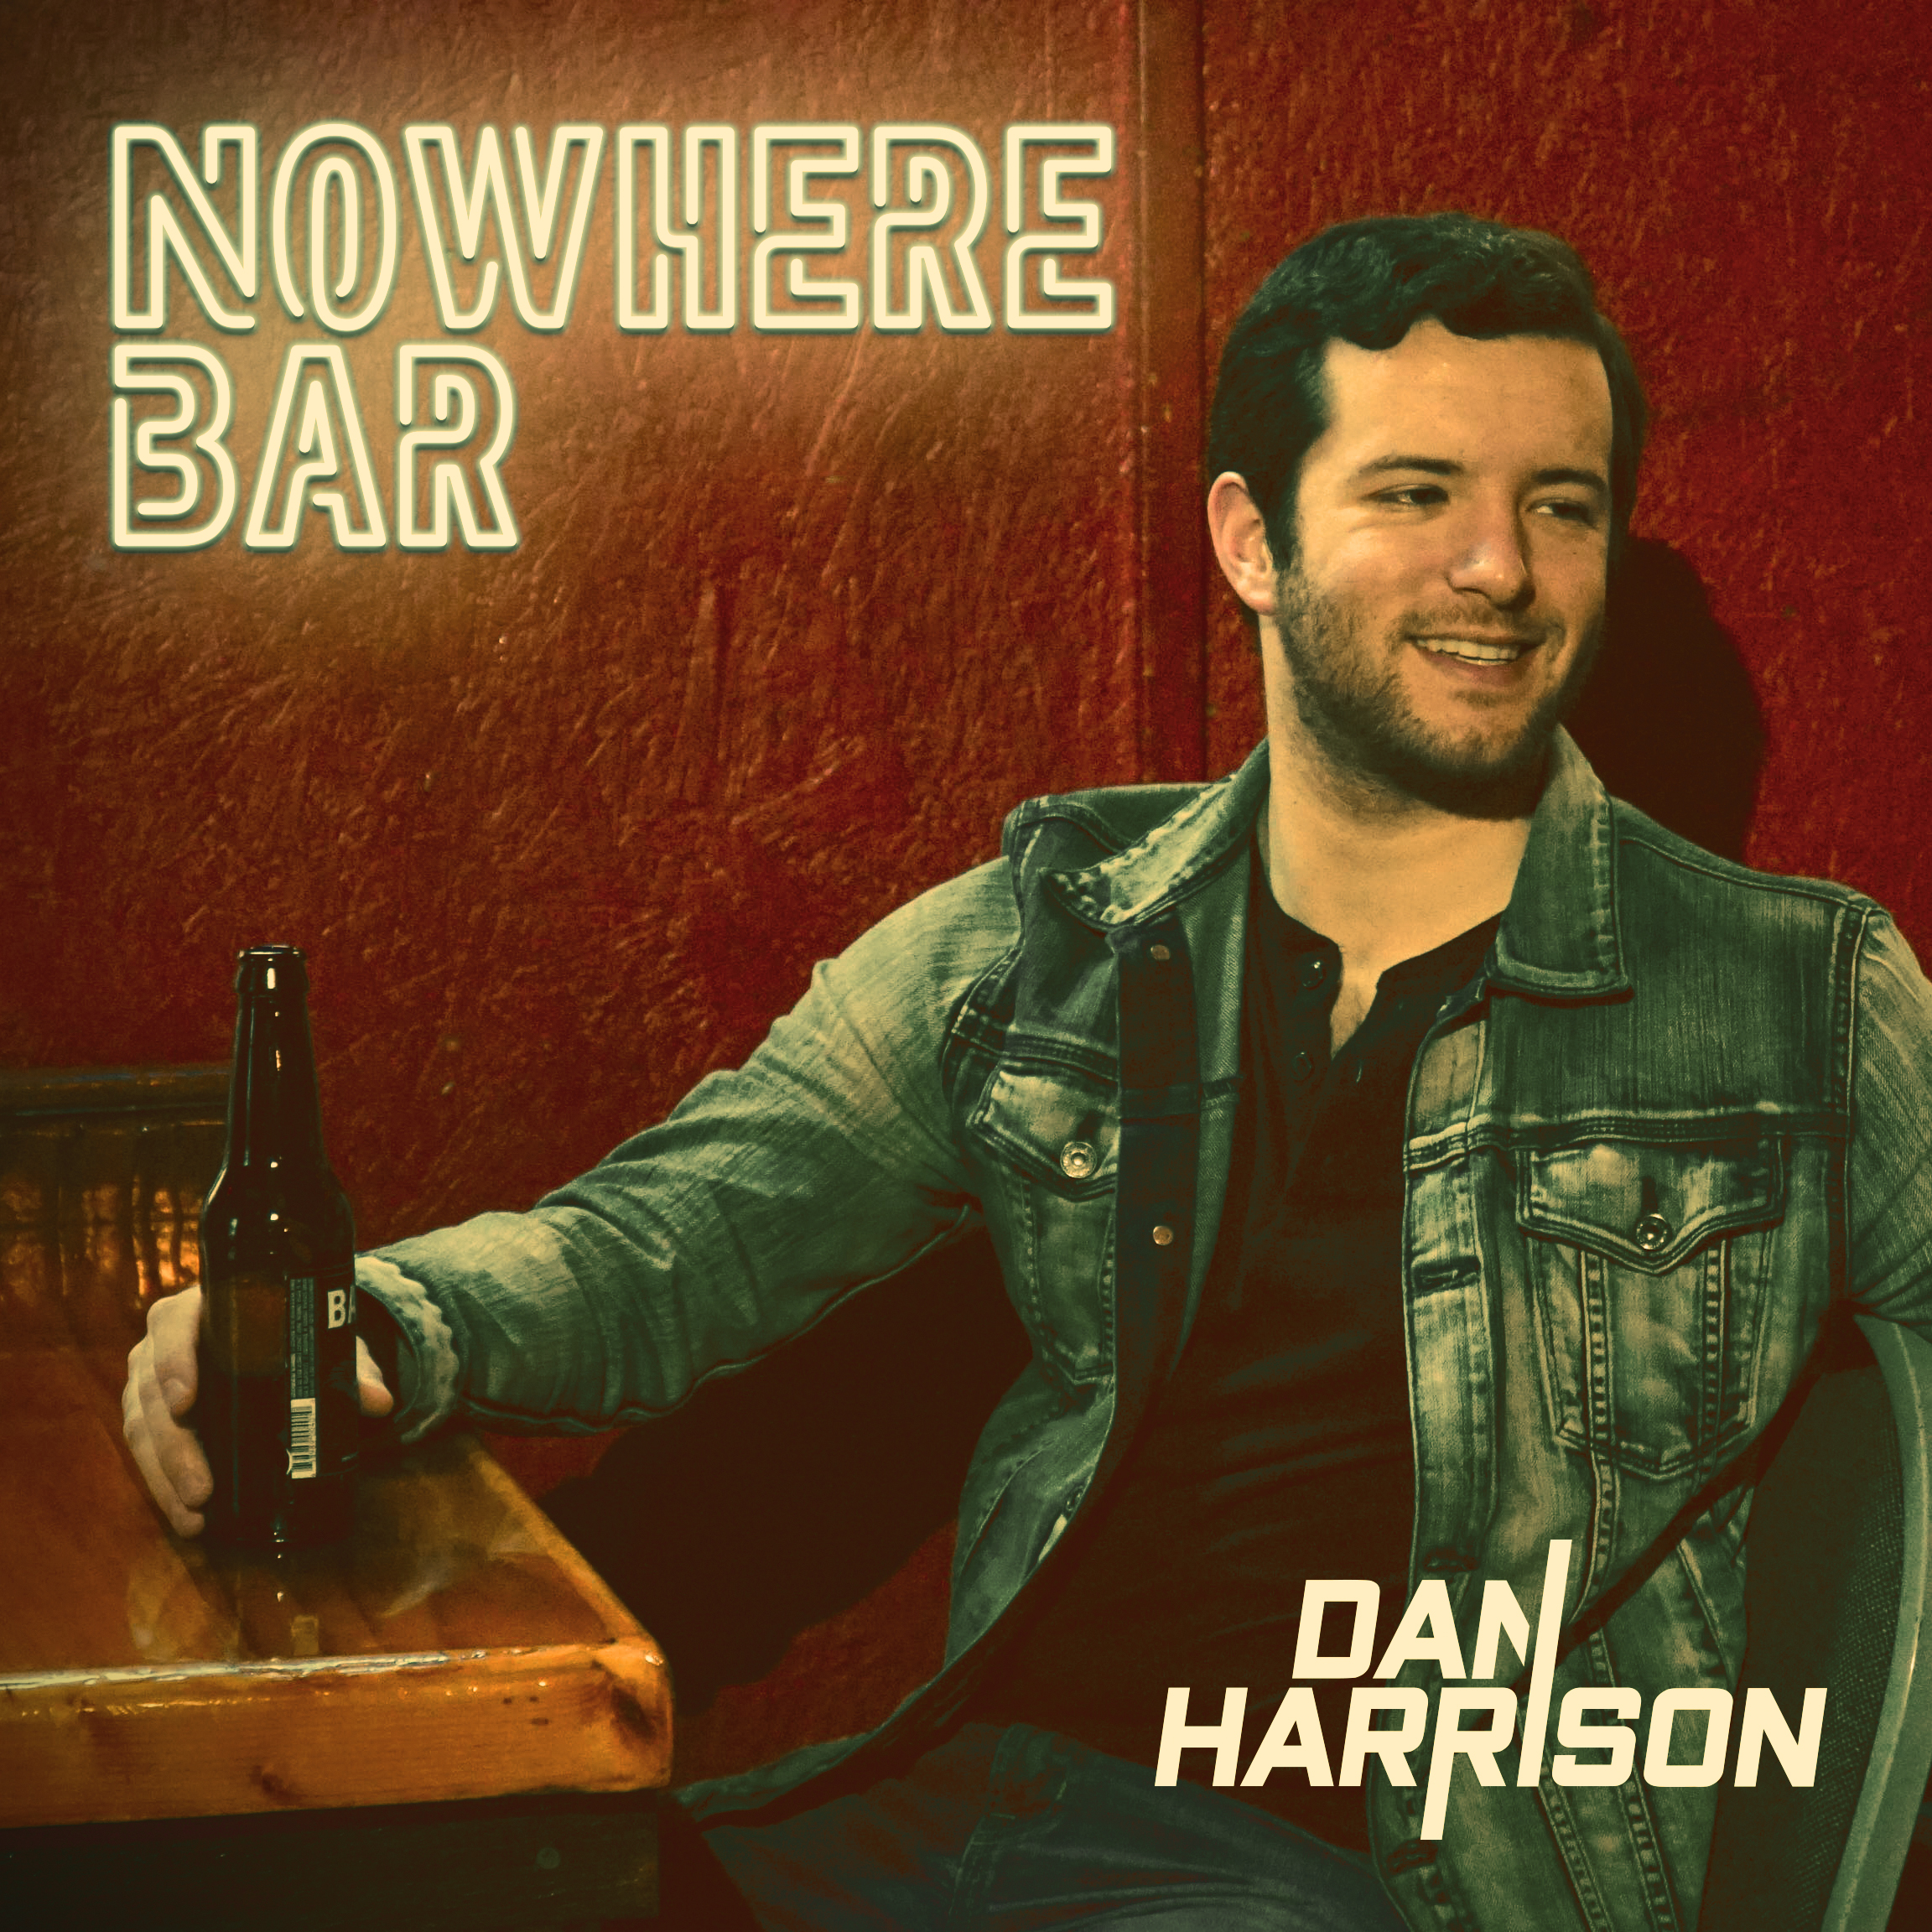 Nowhere Bar (Dan Harrison) Album Art.jpg